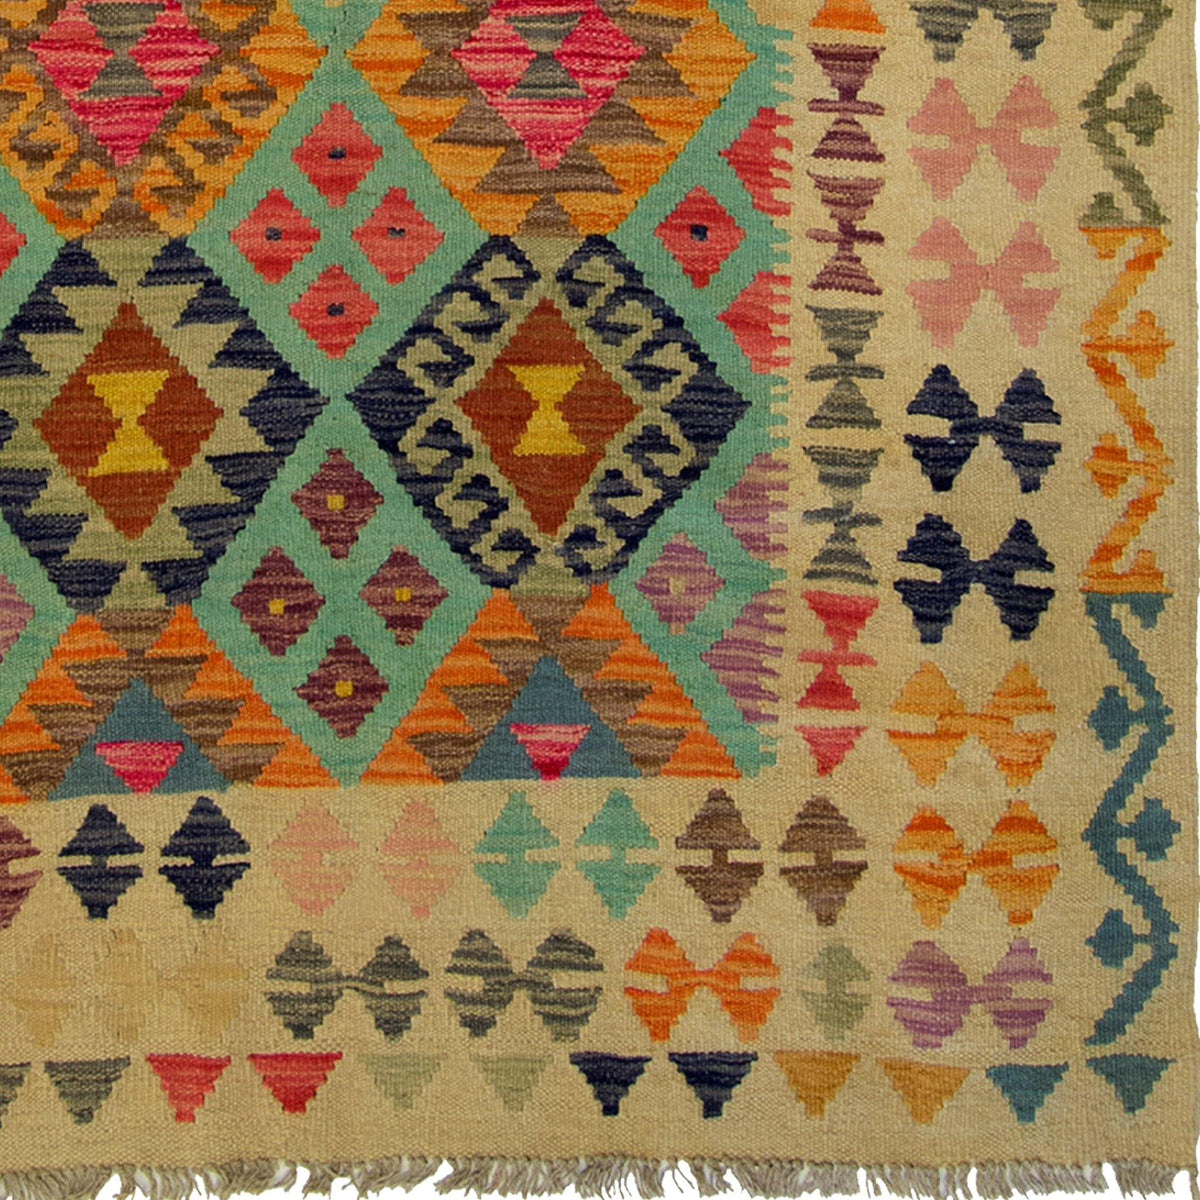 Hand-woven Afghan Chobi  Kilim Rug 122cm x 182cm Persian-Rug | House-of-Haghi | NewMarket | Auckland | NZ | Handmade Persian Rugs | Hand Knotted Persian Rugs